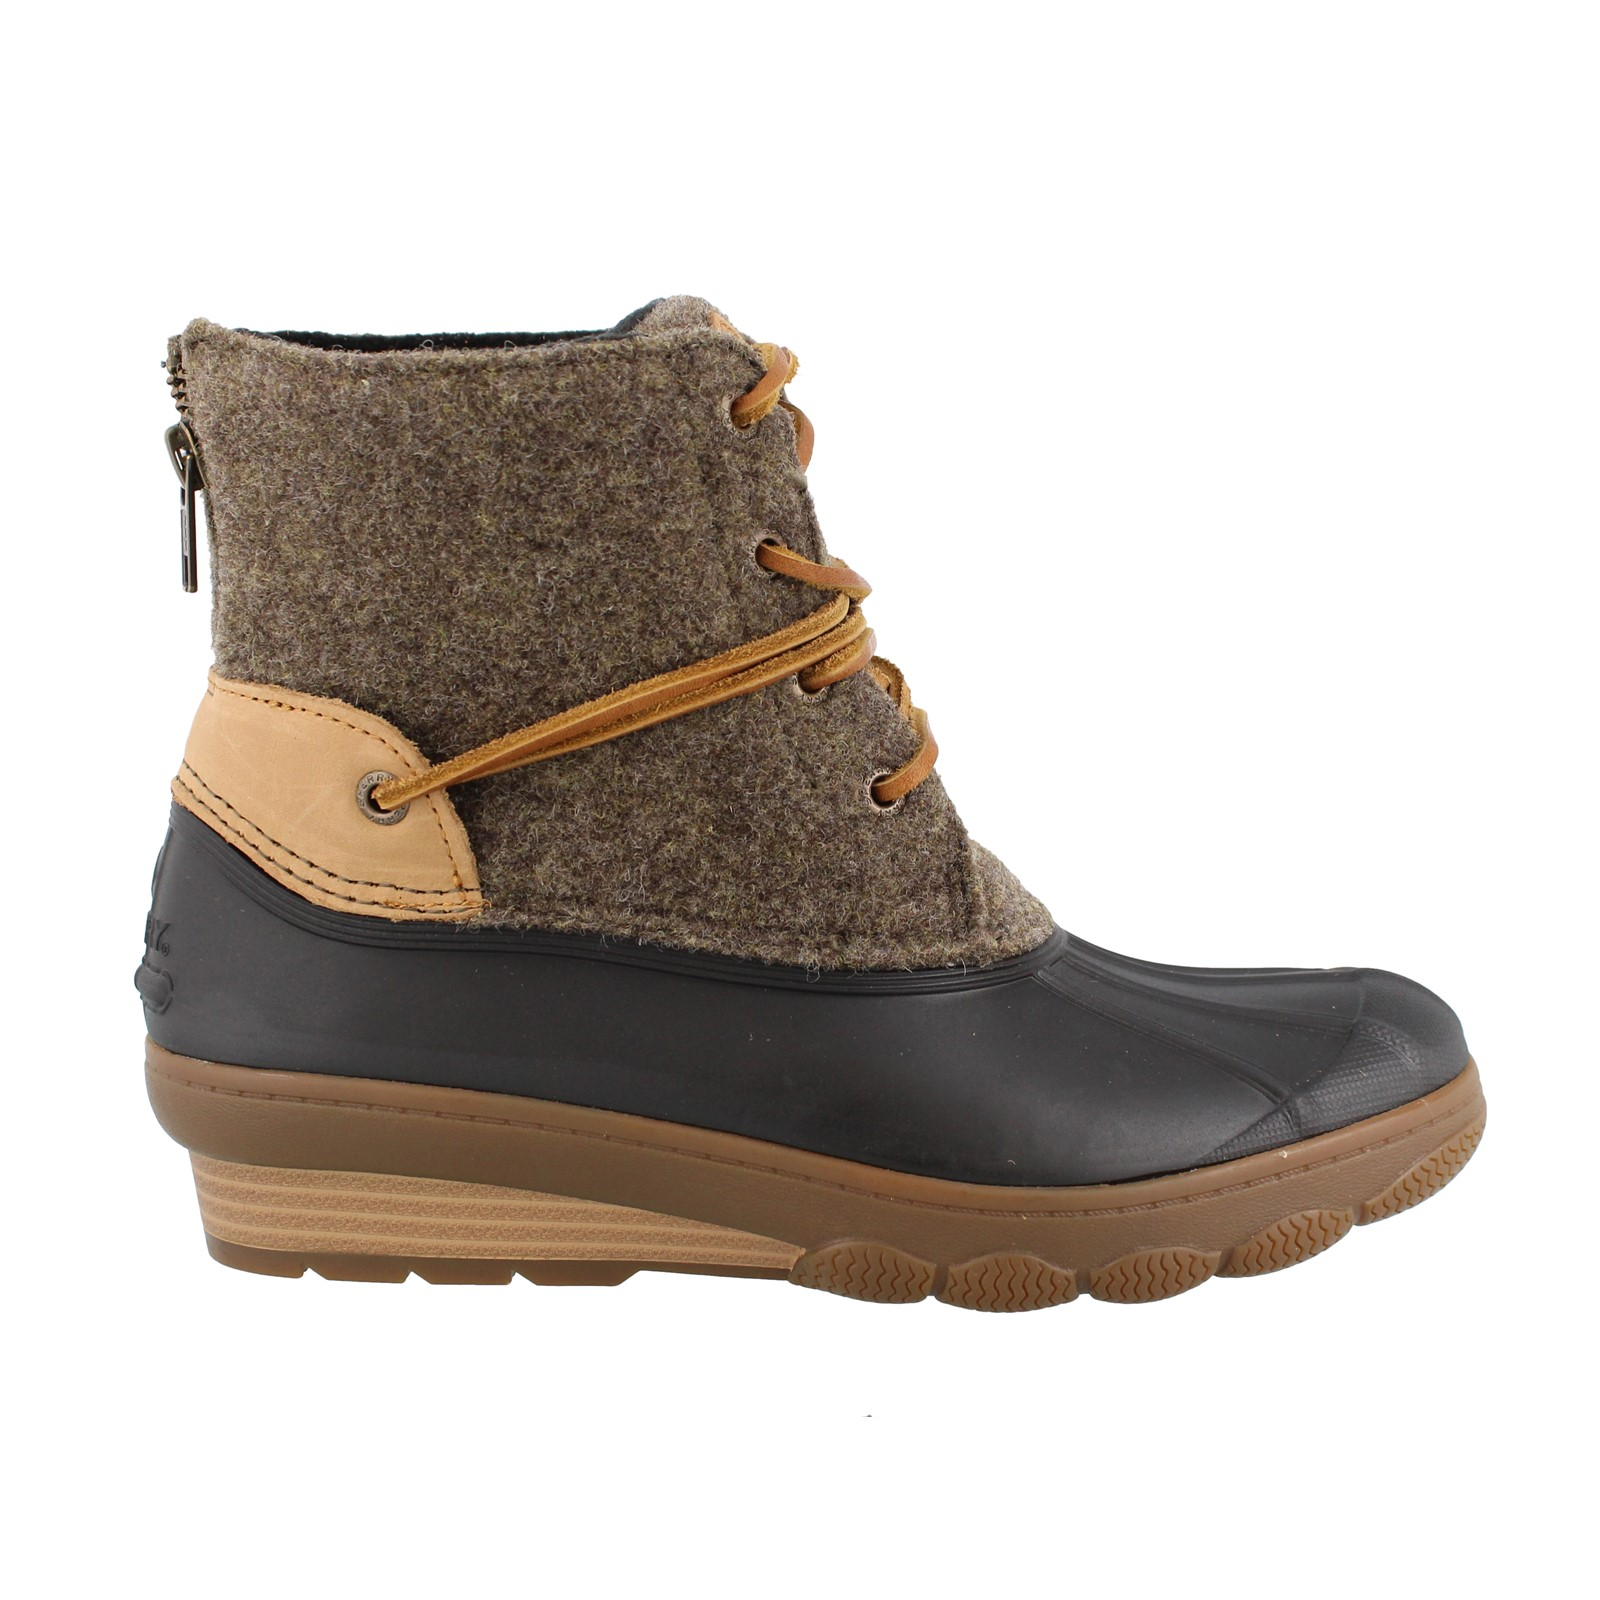 Sperry, Saltwater Wedge Tide boots